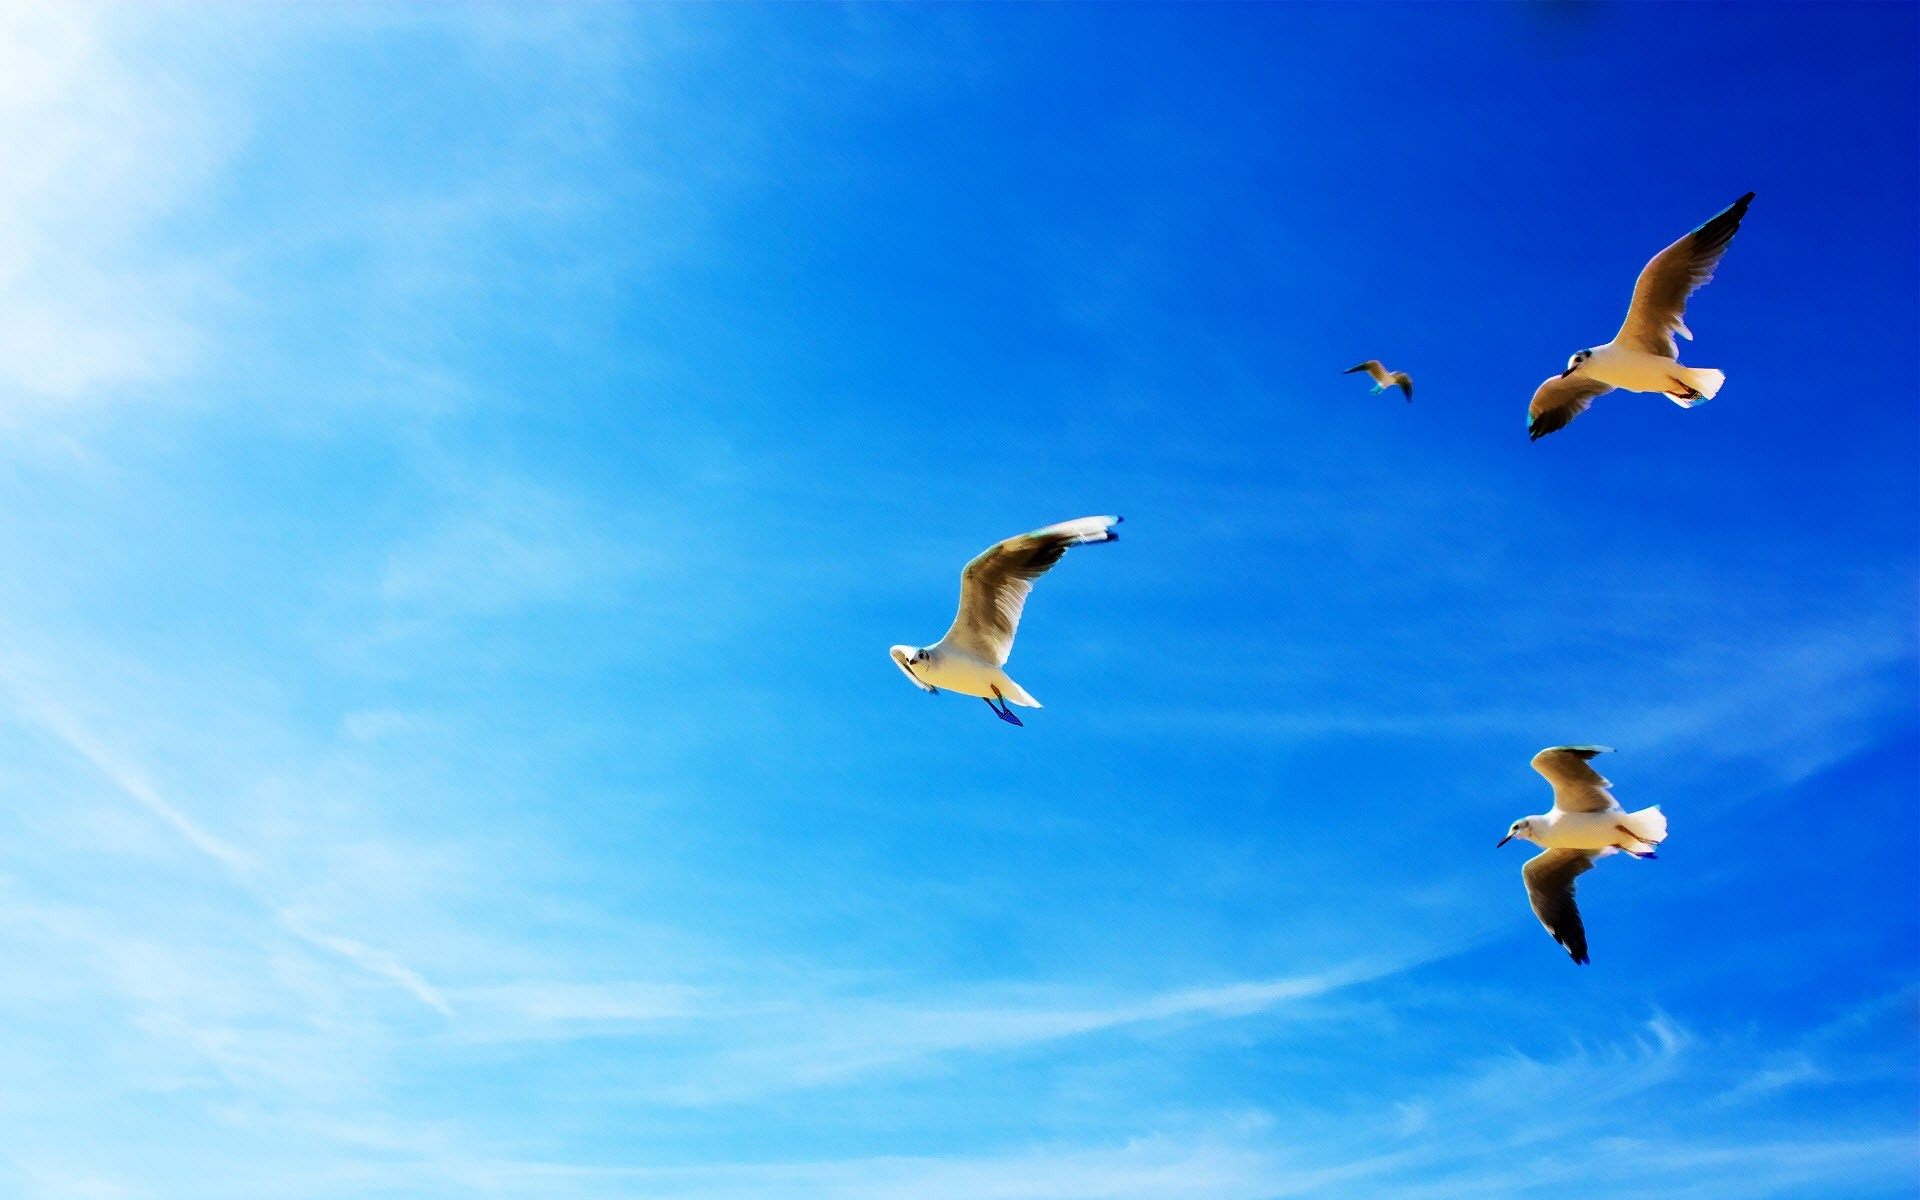 Seagulls On The Sky Wallpaper 1920x1200 px